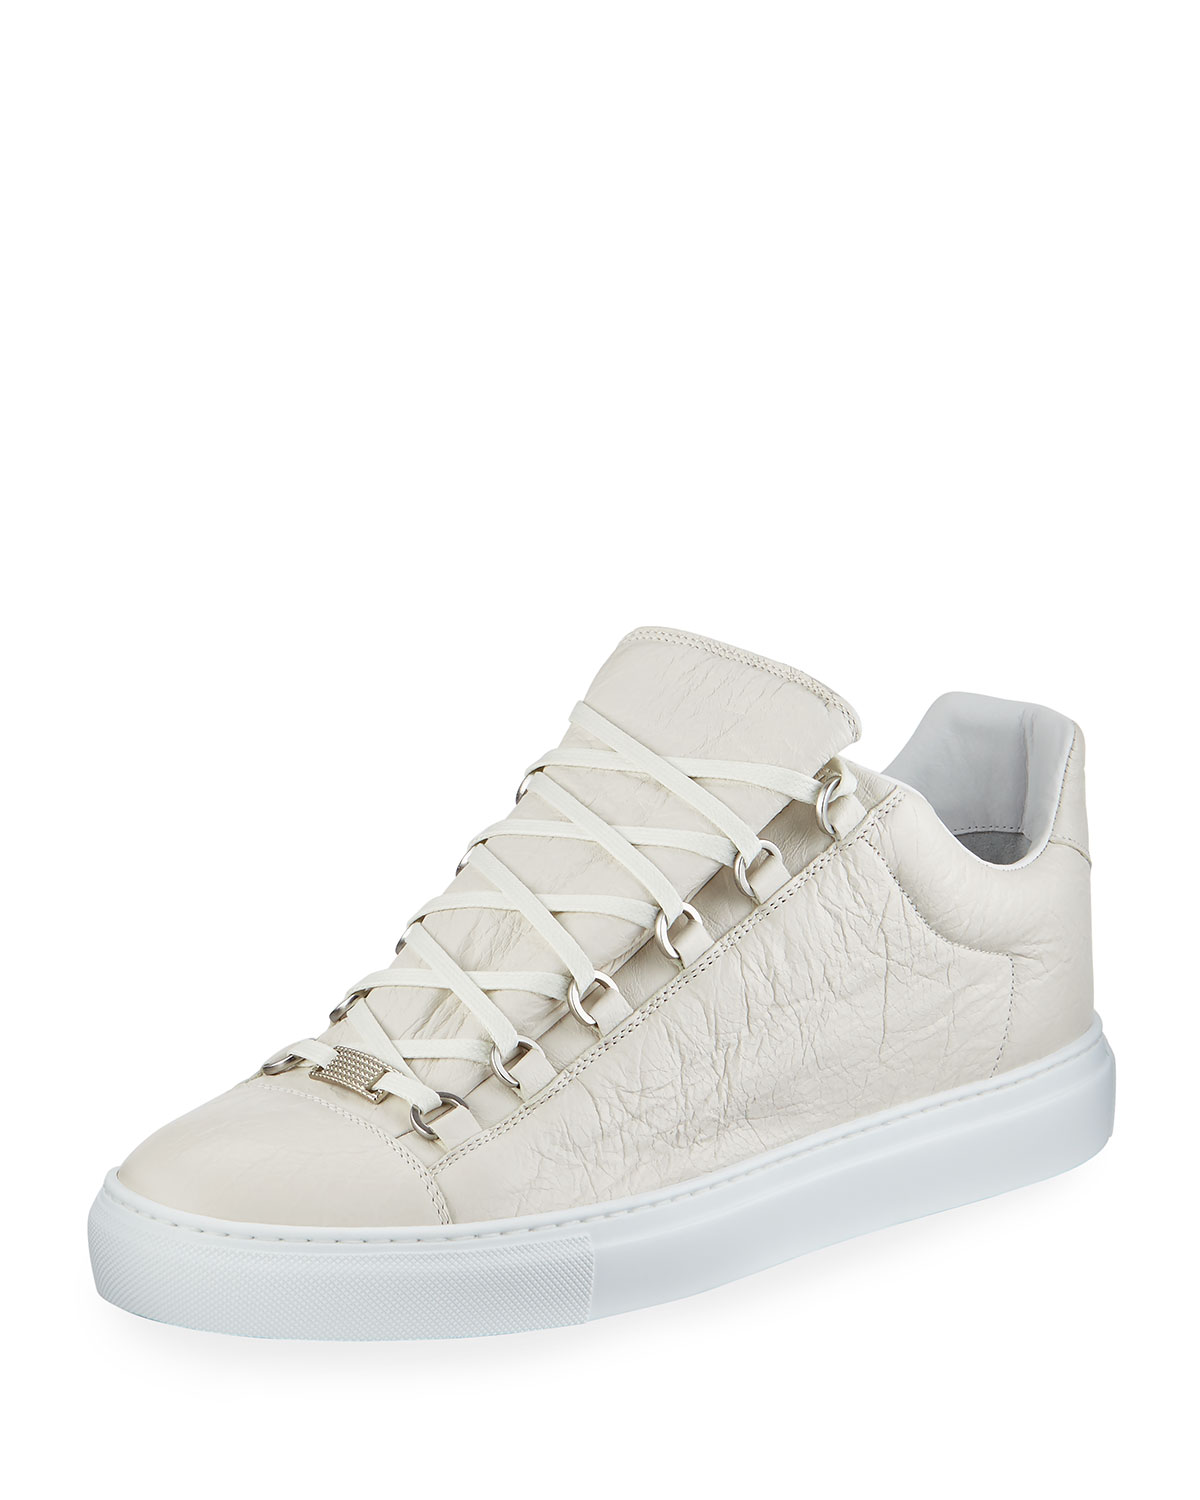 7b742258151e Balenciaga Men s Arena Leather Low-Top Sneakers